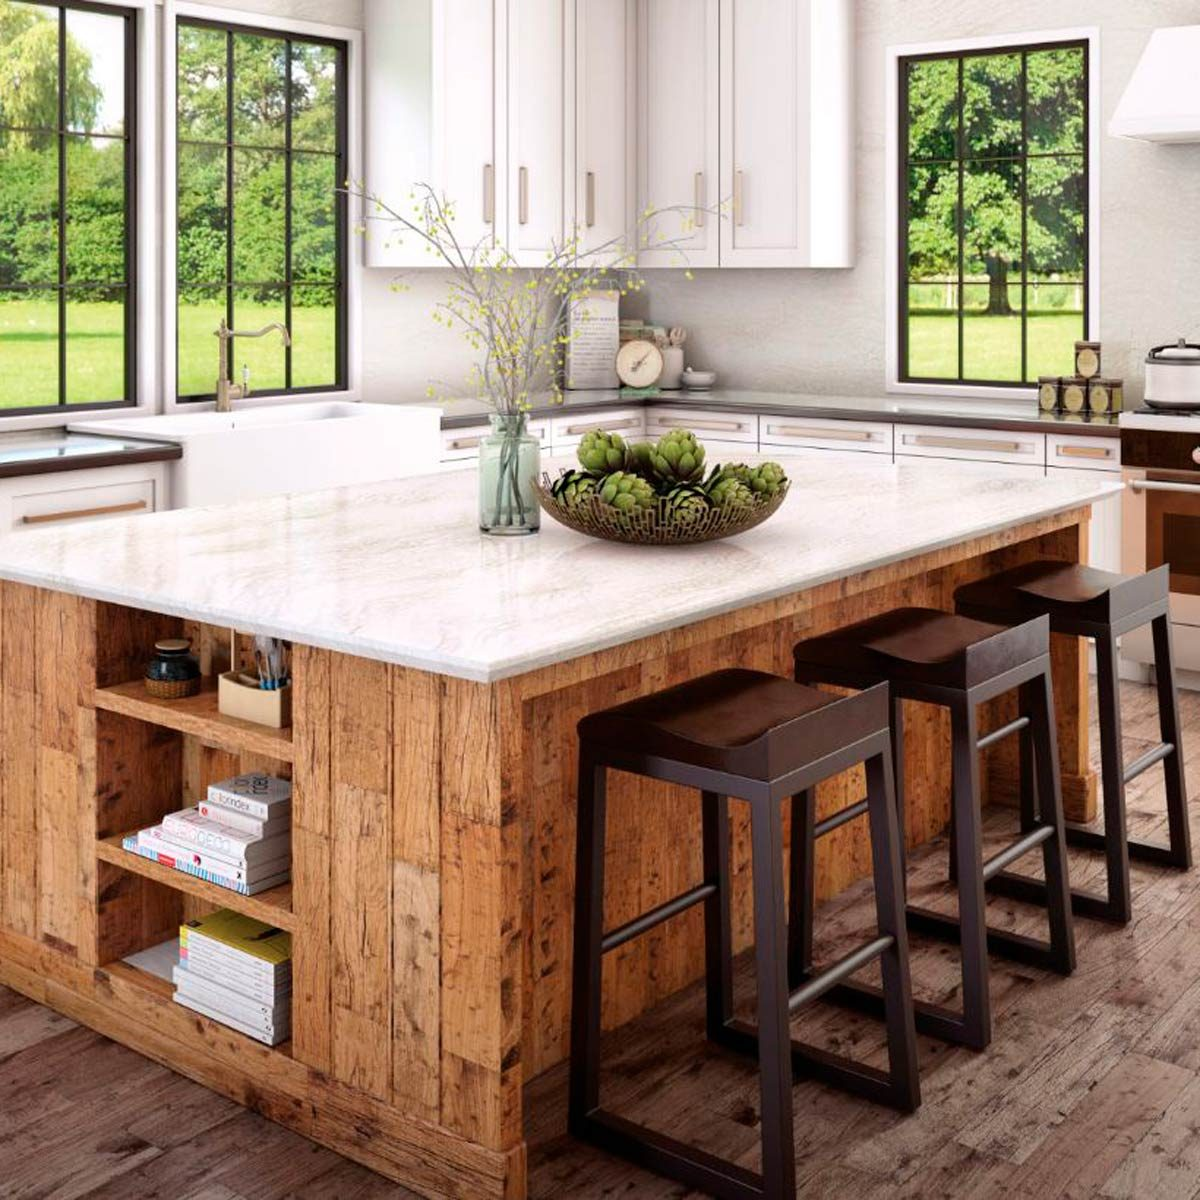 How To Clean Quartz Countertops Family Handyman